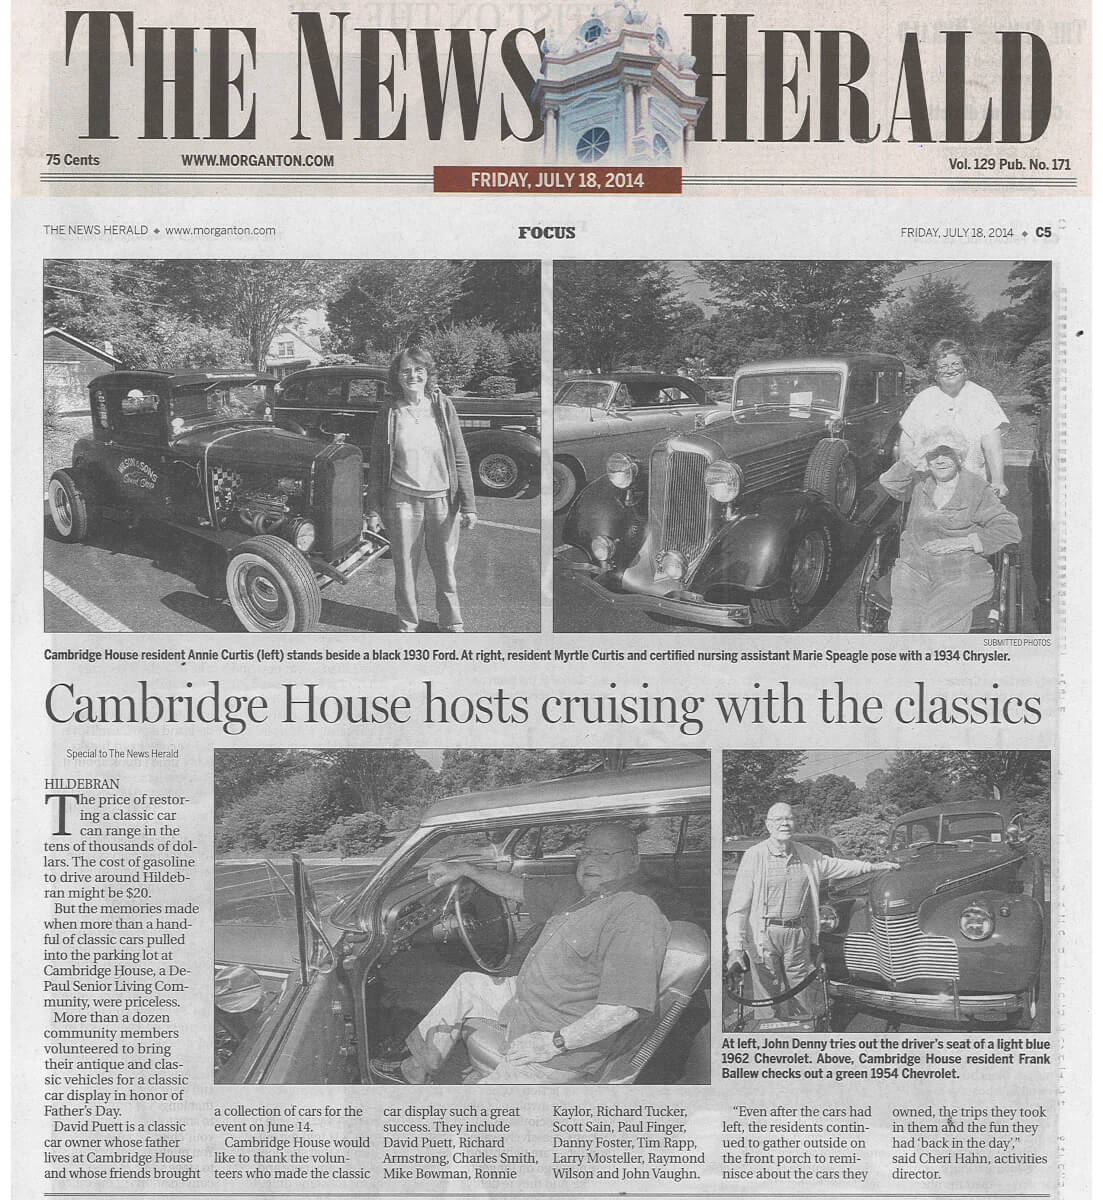 Cambridge House Senior Living Cruisin' with the Classics Article in the Morganton News Herald July 18, 2014